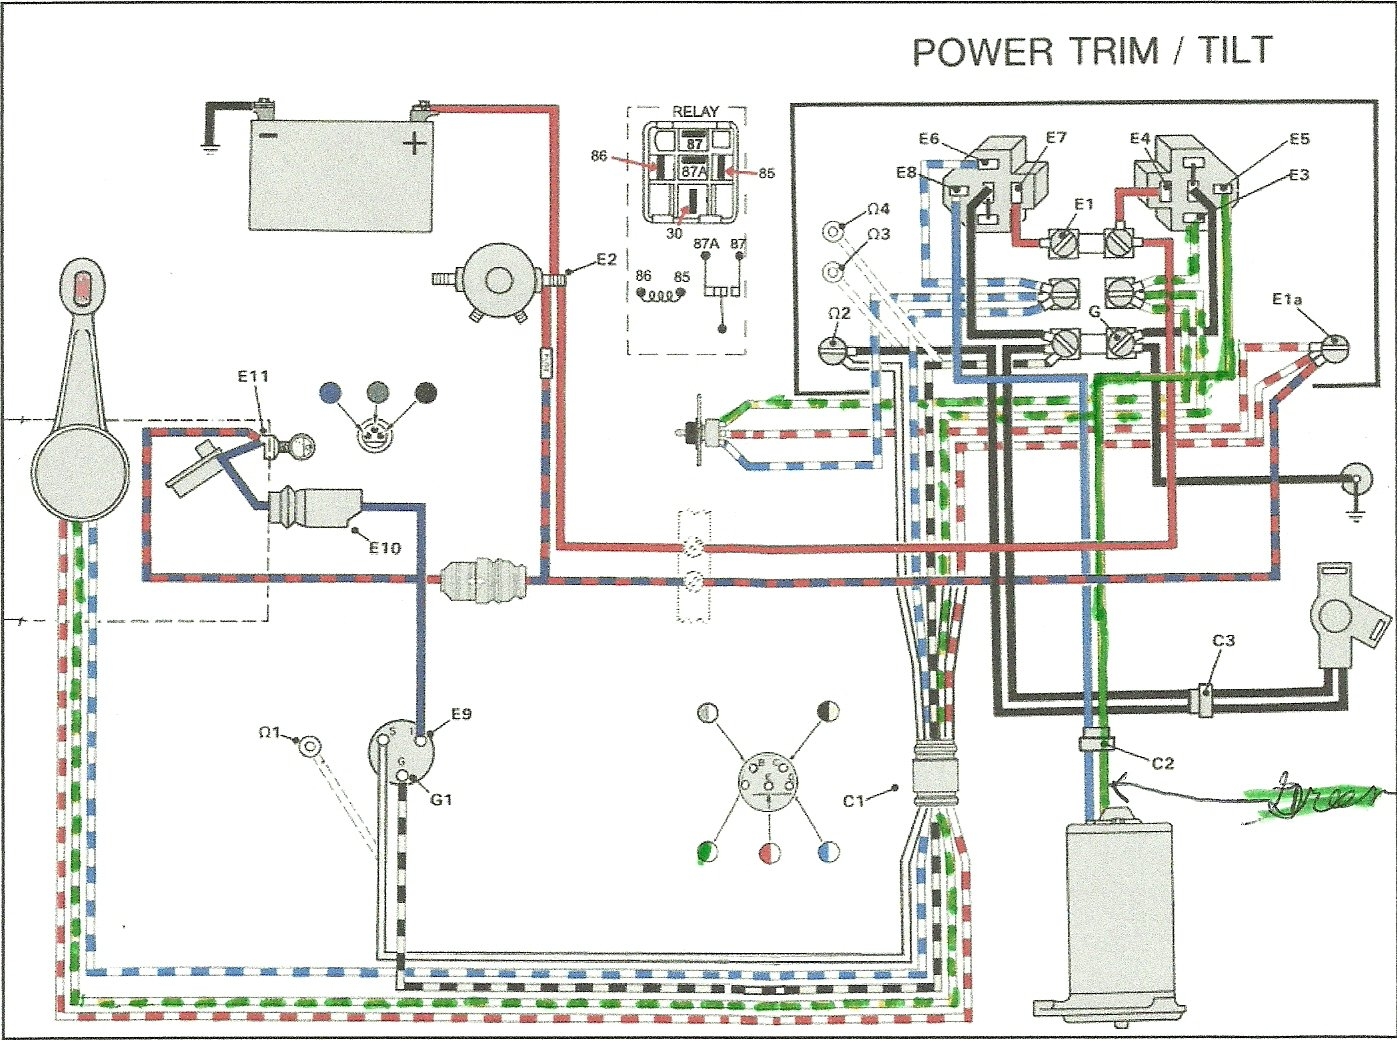 2011 06 26_203040_omc_t n t_outbrd evinrude power trim wiring diagram on evinrude download wirning evinrude vro wiring diagram at bakdesigns.co